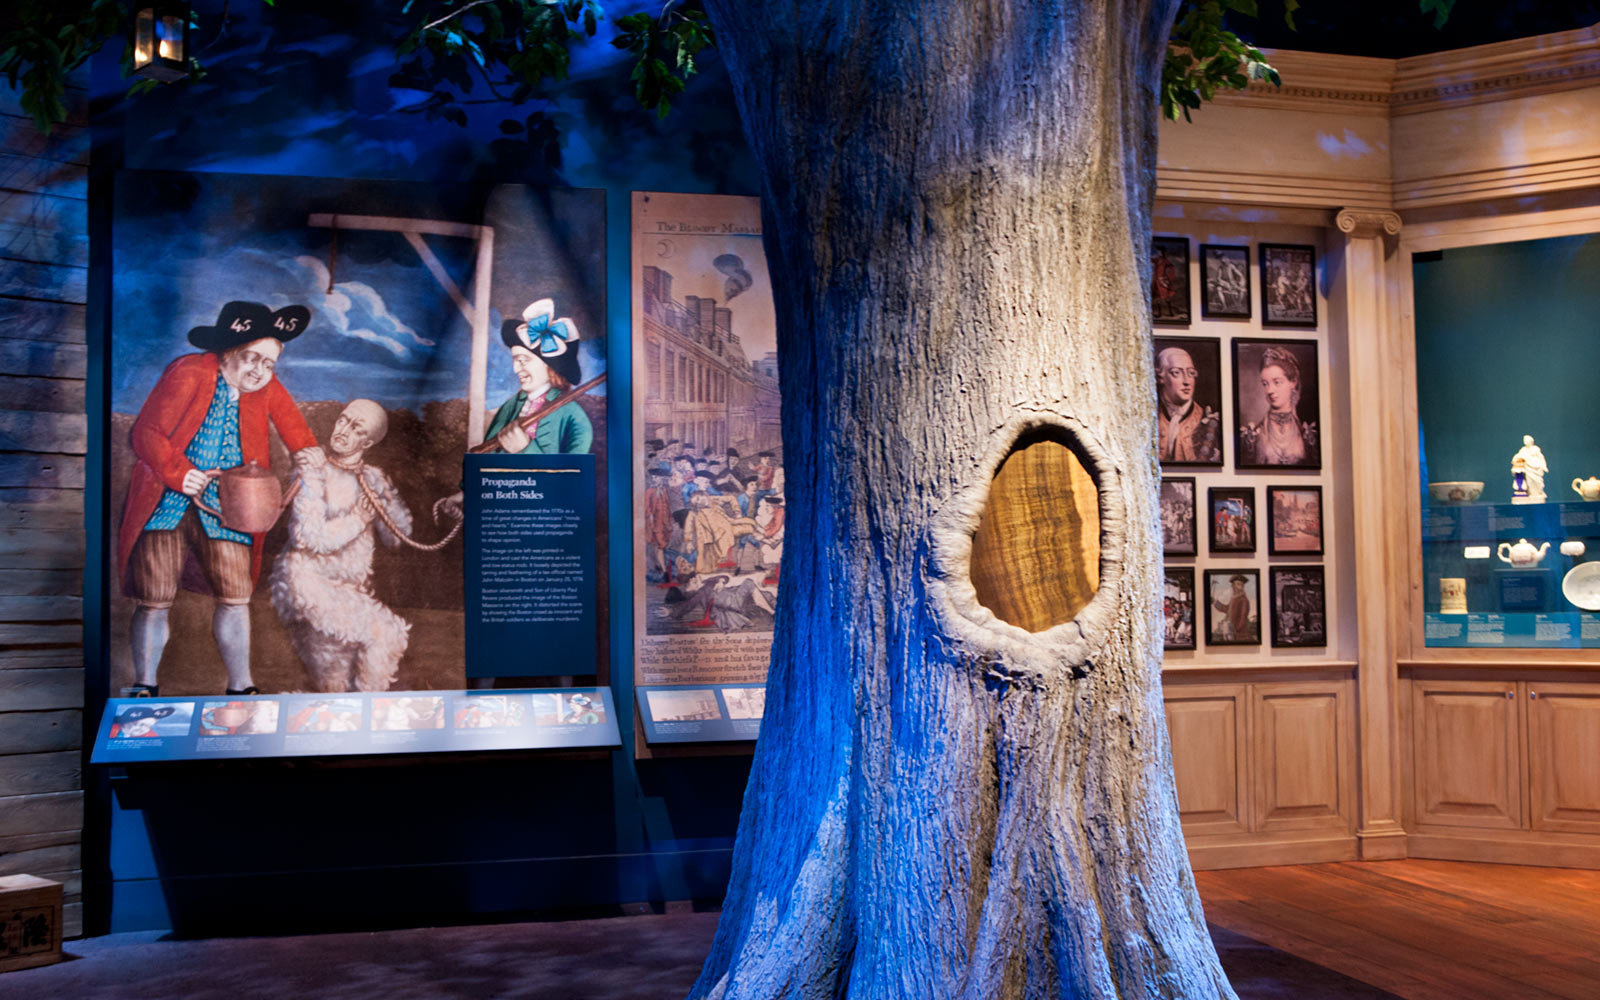 Liberty Tree, Annapolis, Museum of the American Revolution, Philadelphia, Pennsylvania